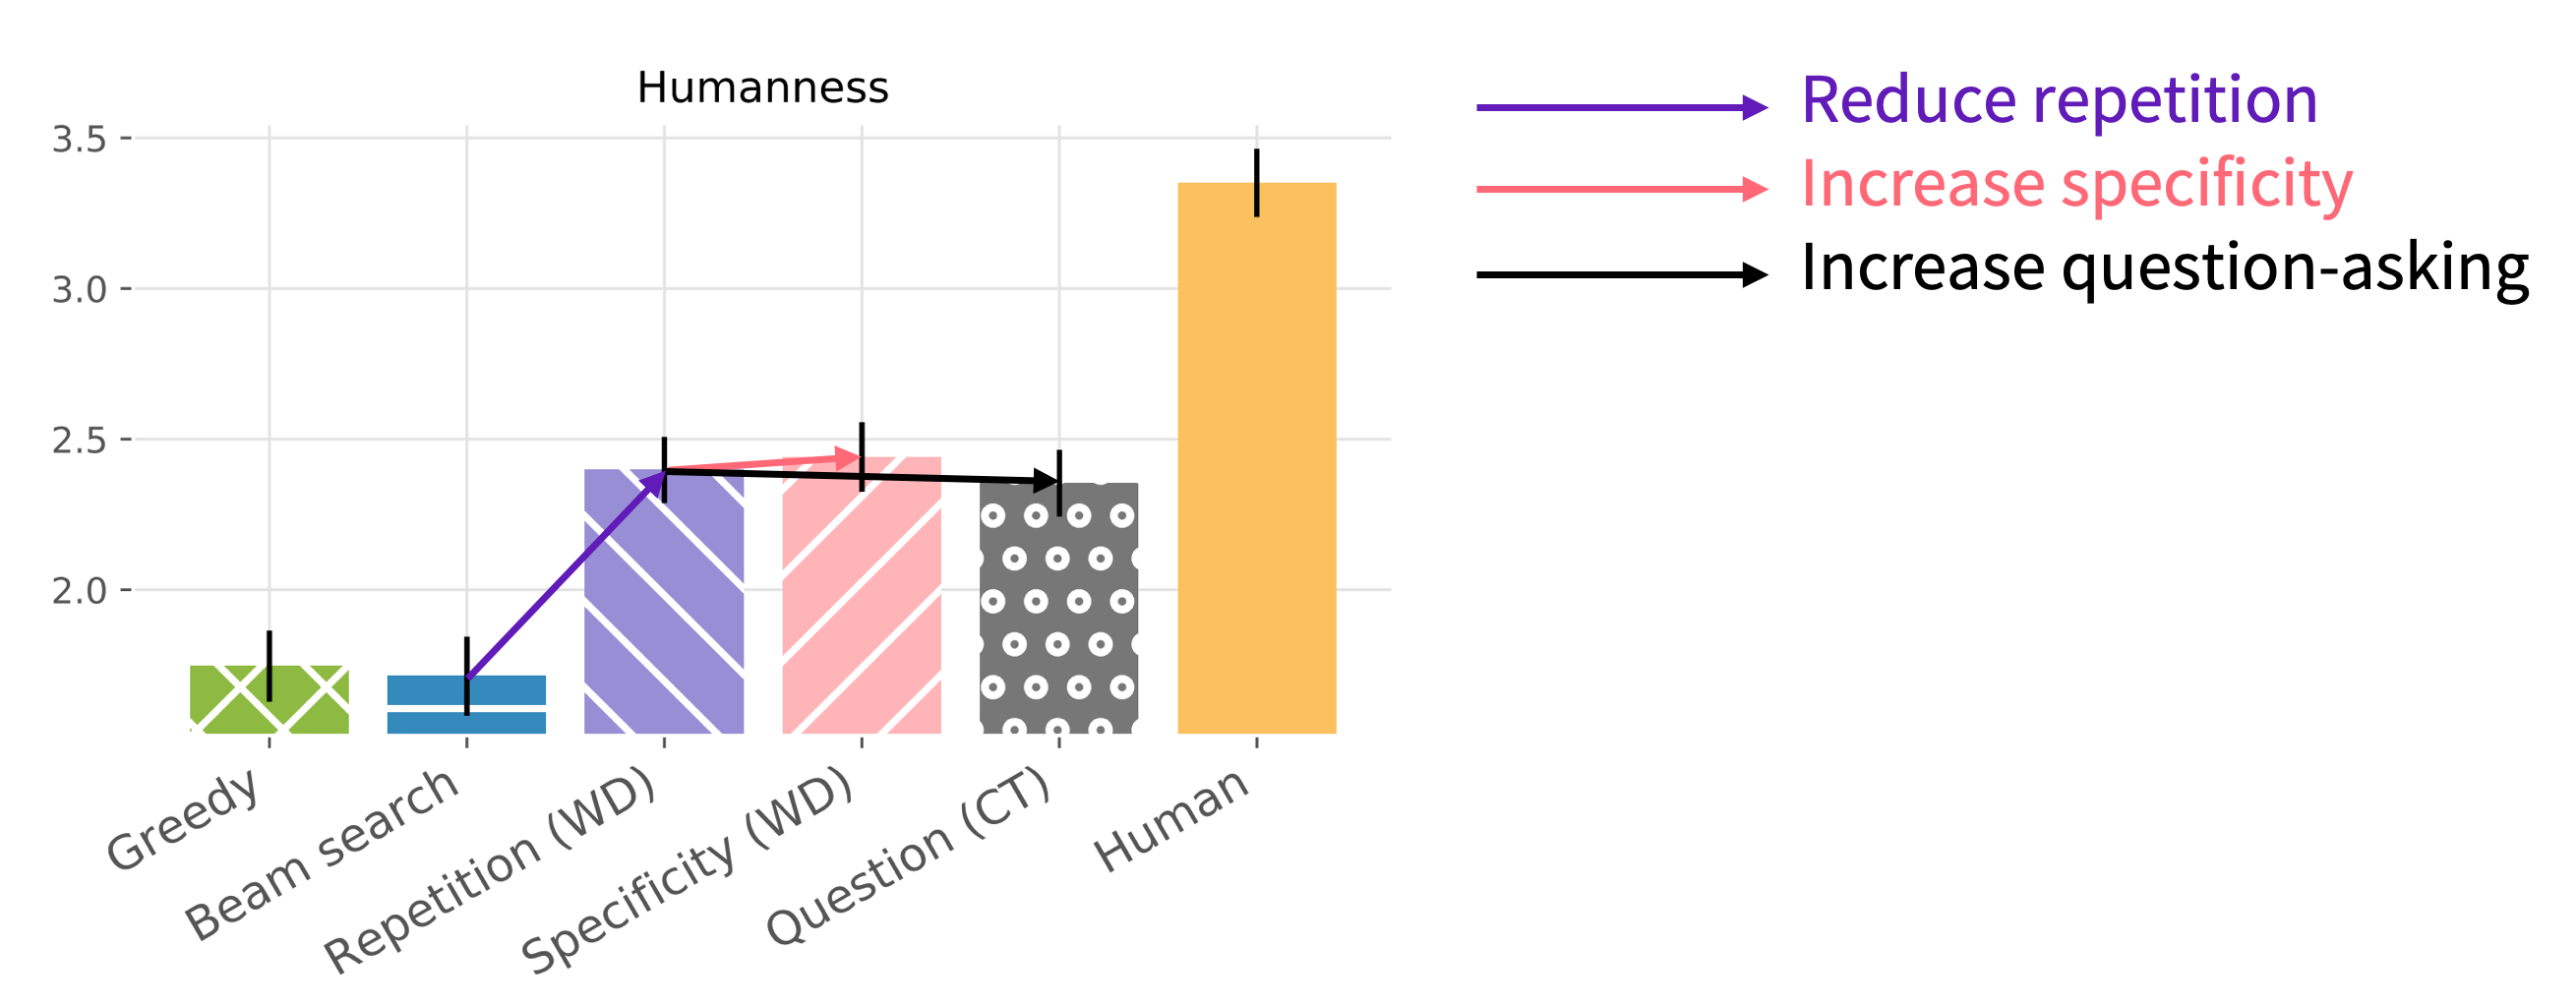 Bar chart showing the limited humanness of the models